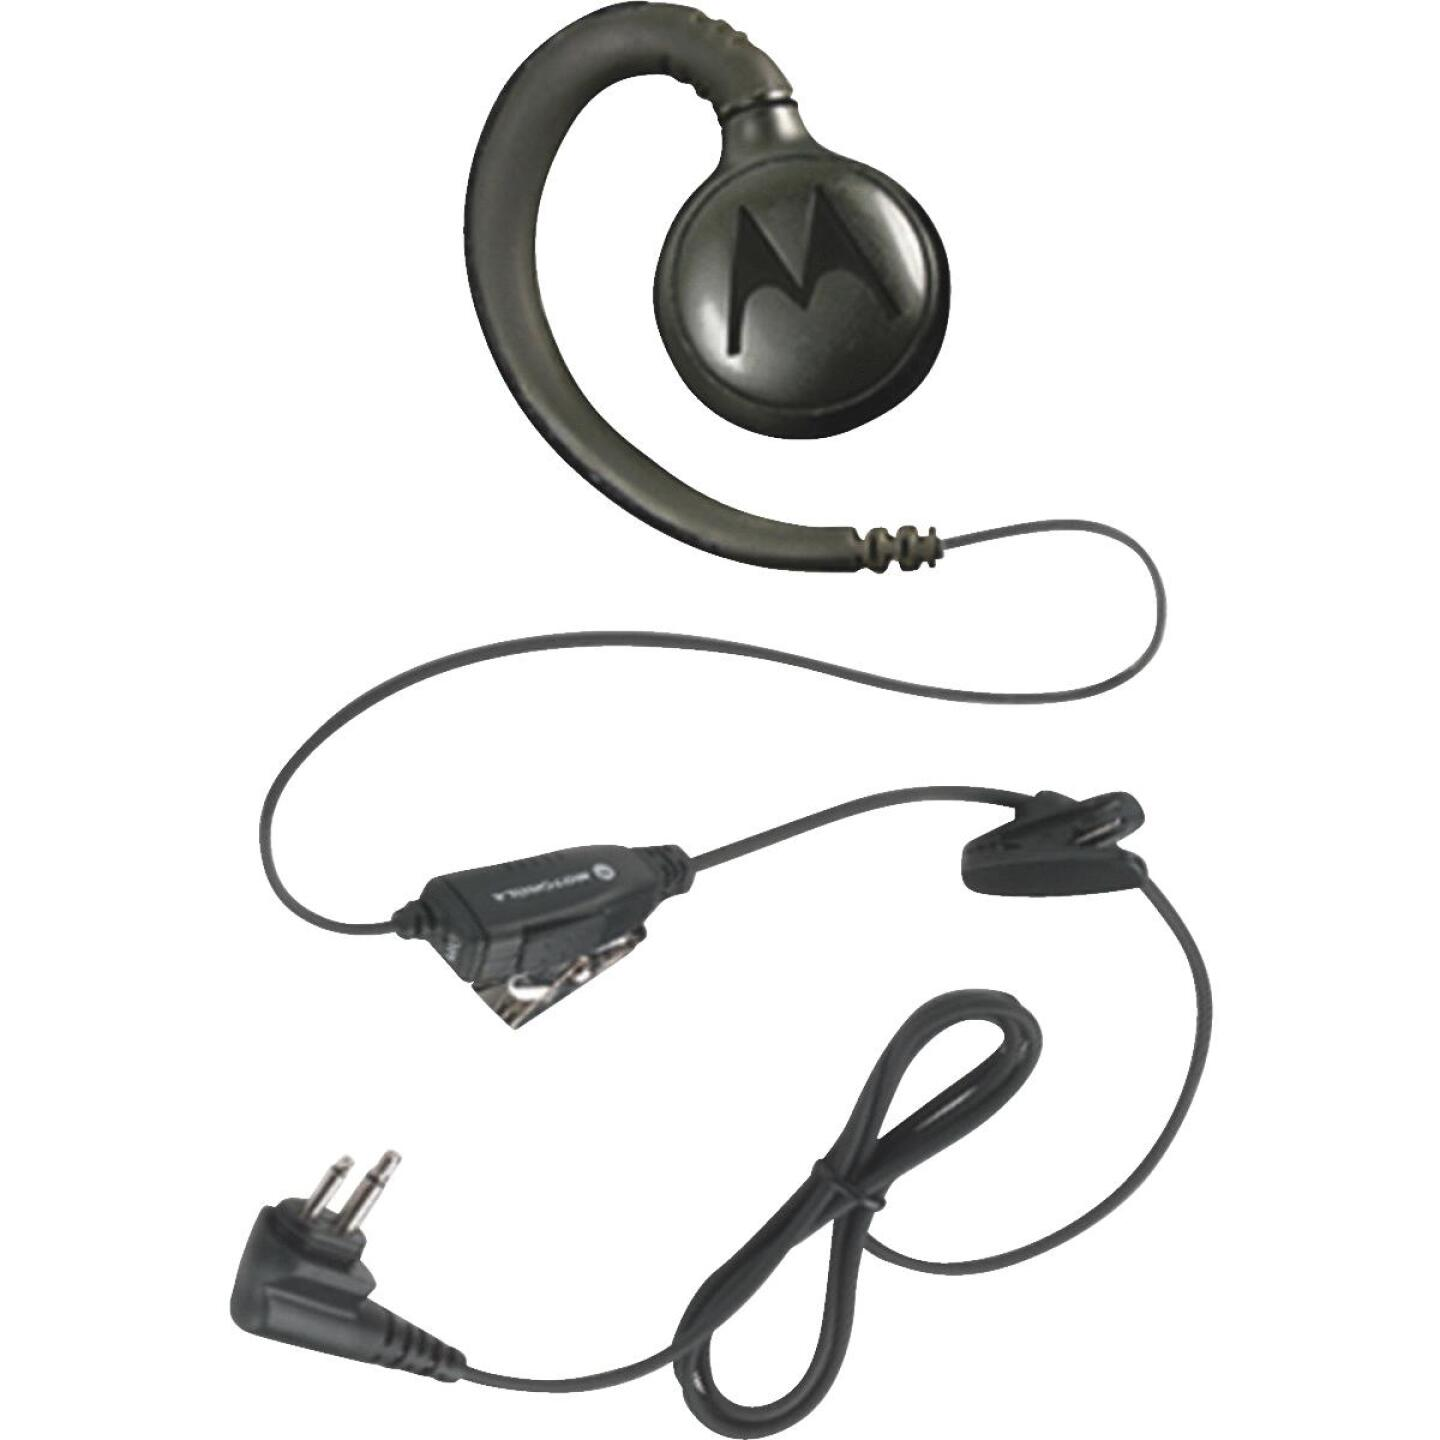 Motorola Earpiece & Microphone Cell Phone Headset Image 1